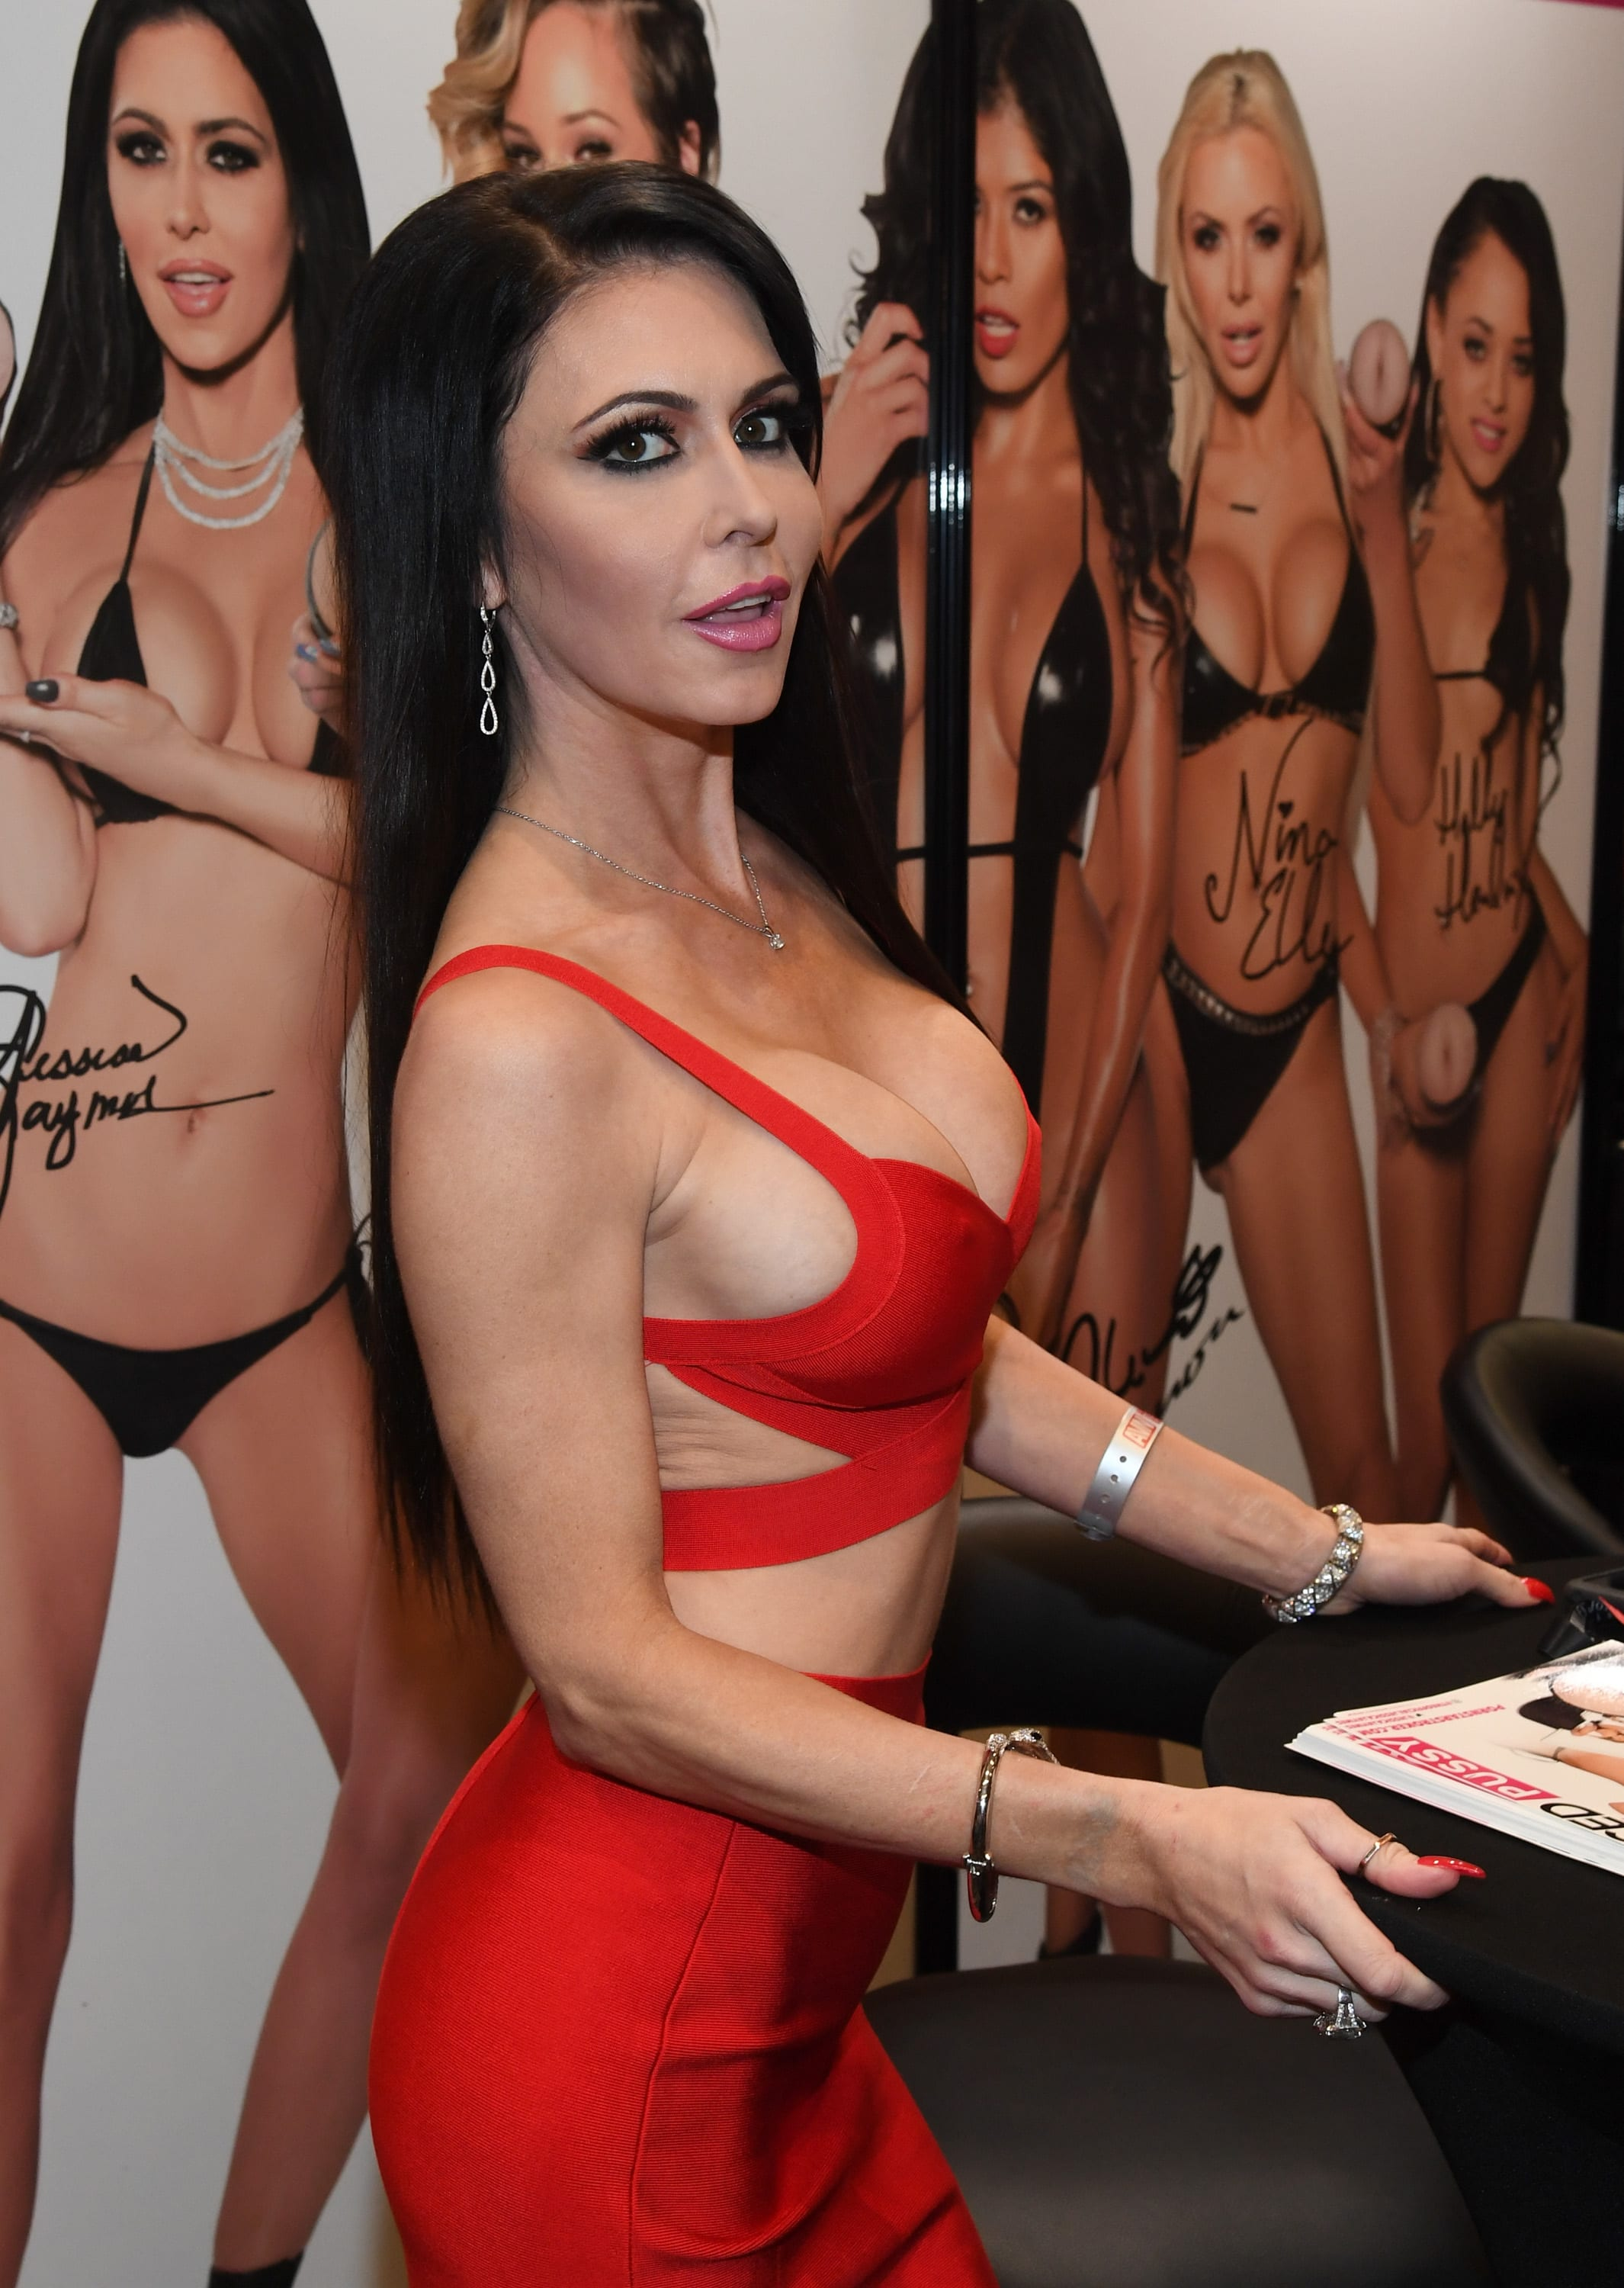 Jessica Jaymes Galleries jessica jaymes pic - the hollywood gossip